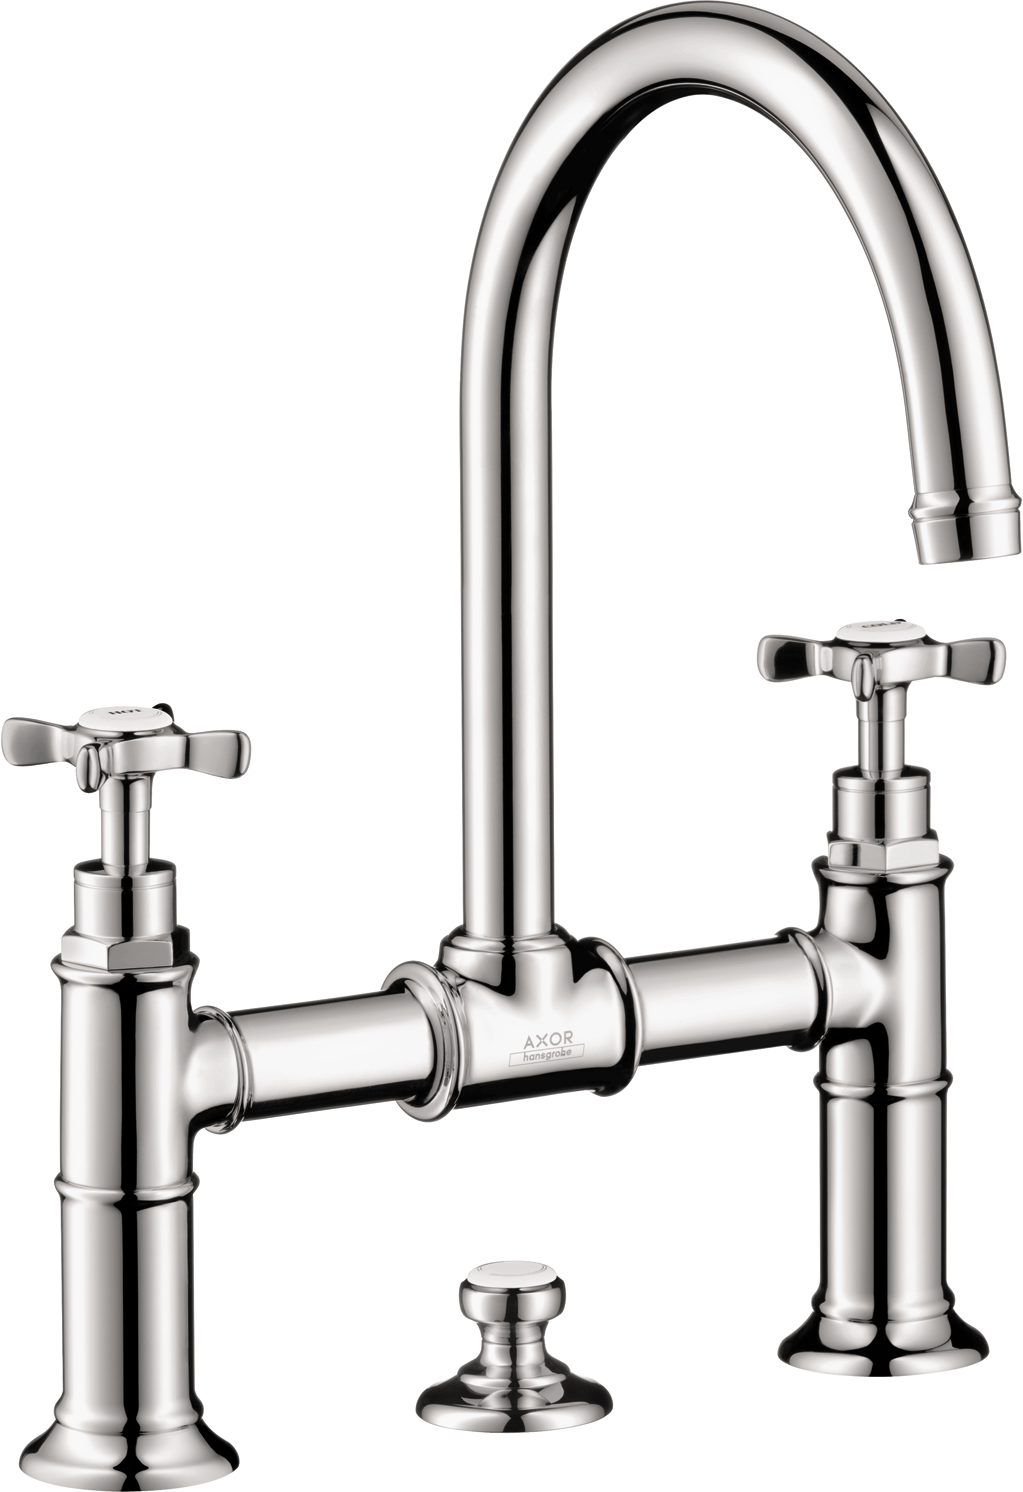 Axor AXOR Montreux Widespread Faucet with Cross Handles, Bridge Model, 1.2 GPM